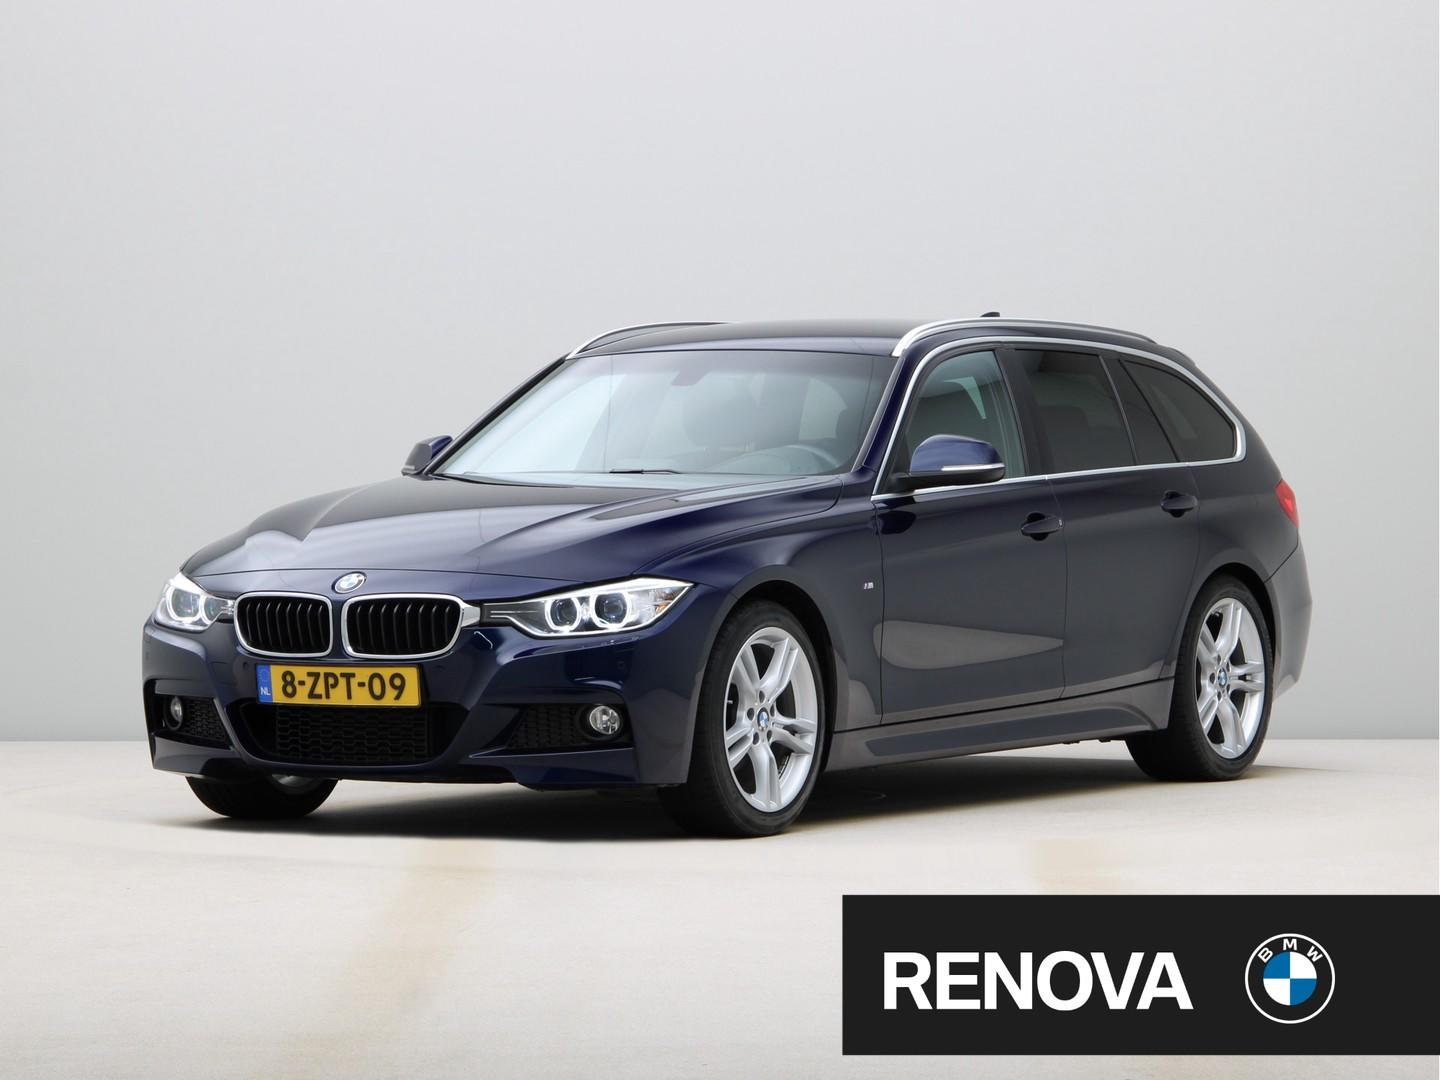 Bmw 3 serie Touring 320i executive achteruitrijcamera